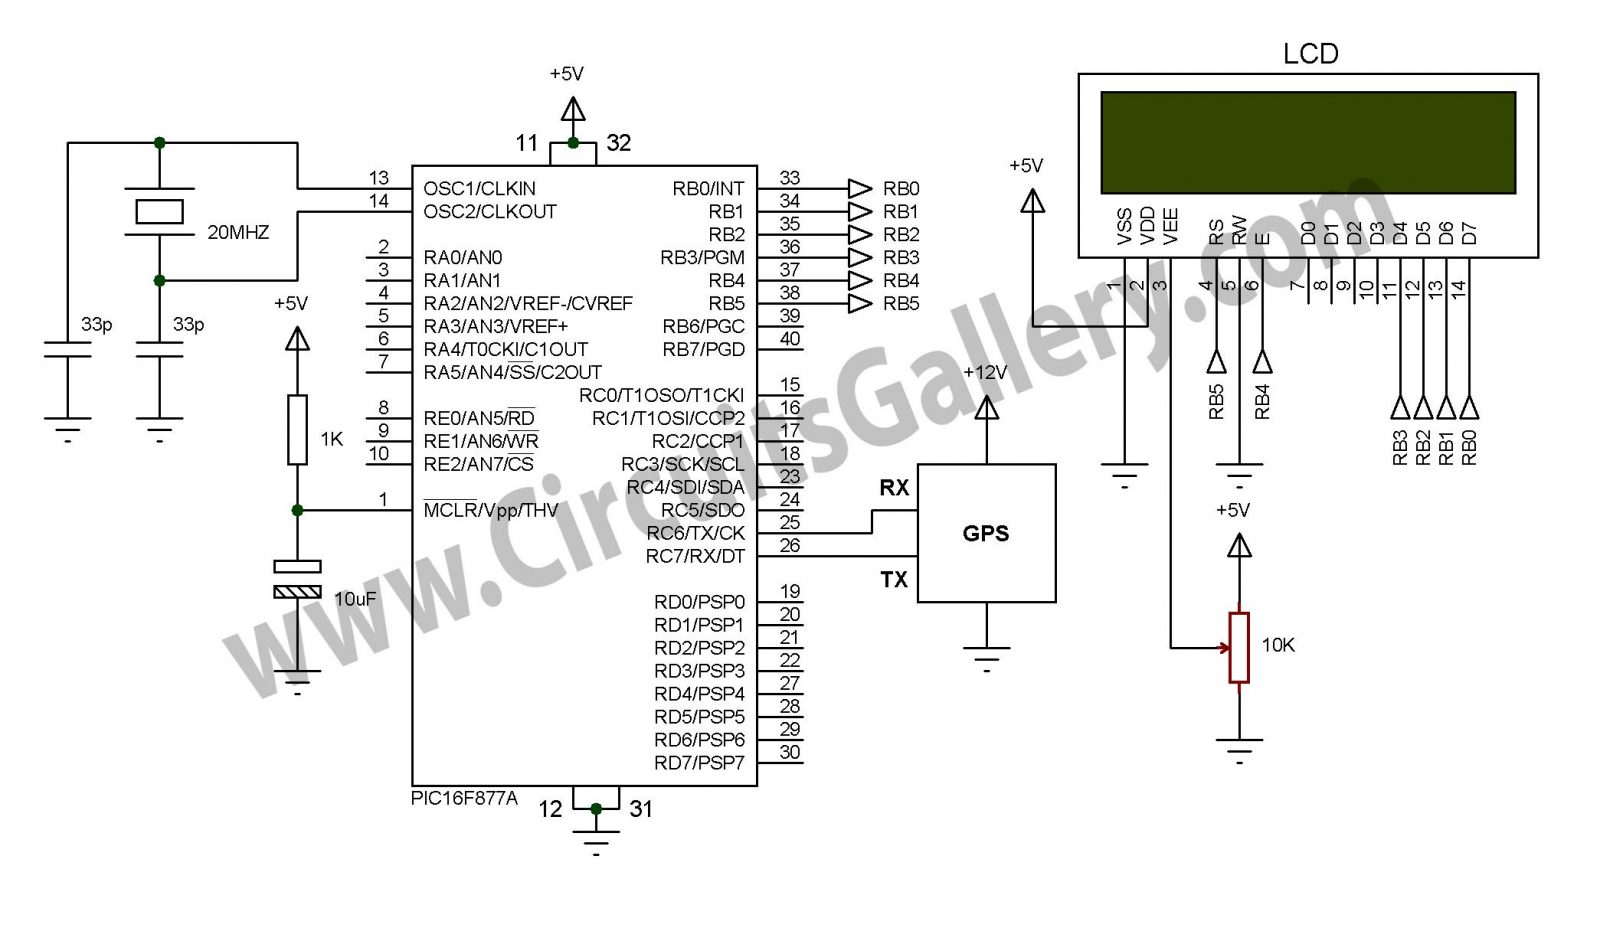 hight resolution of simple digital gps speedometer using pic16f877a with lcd display schematic